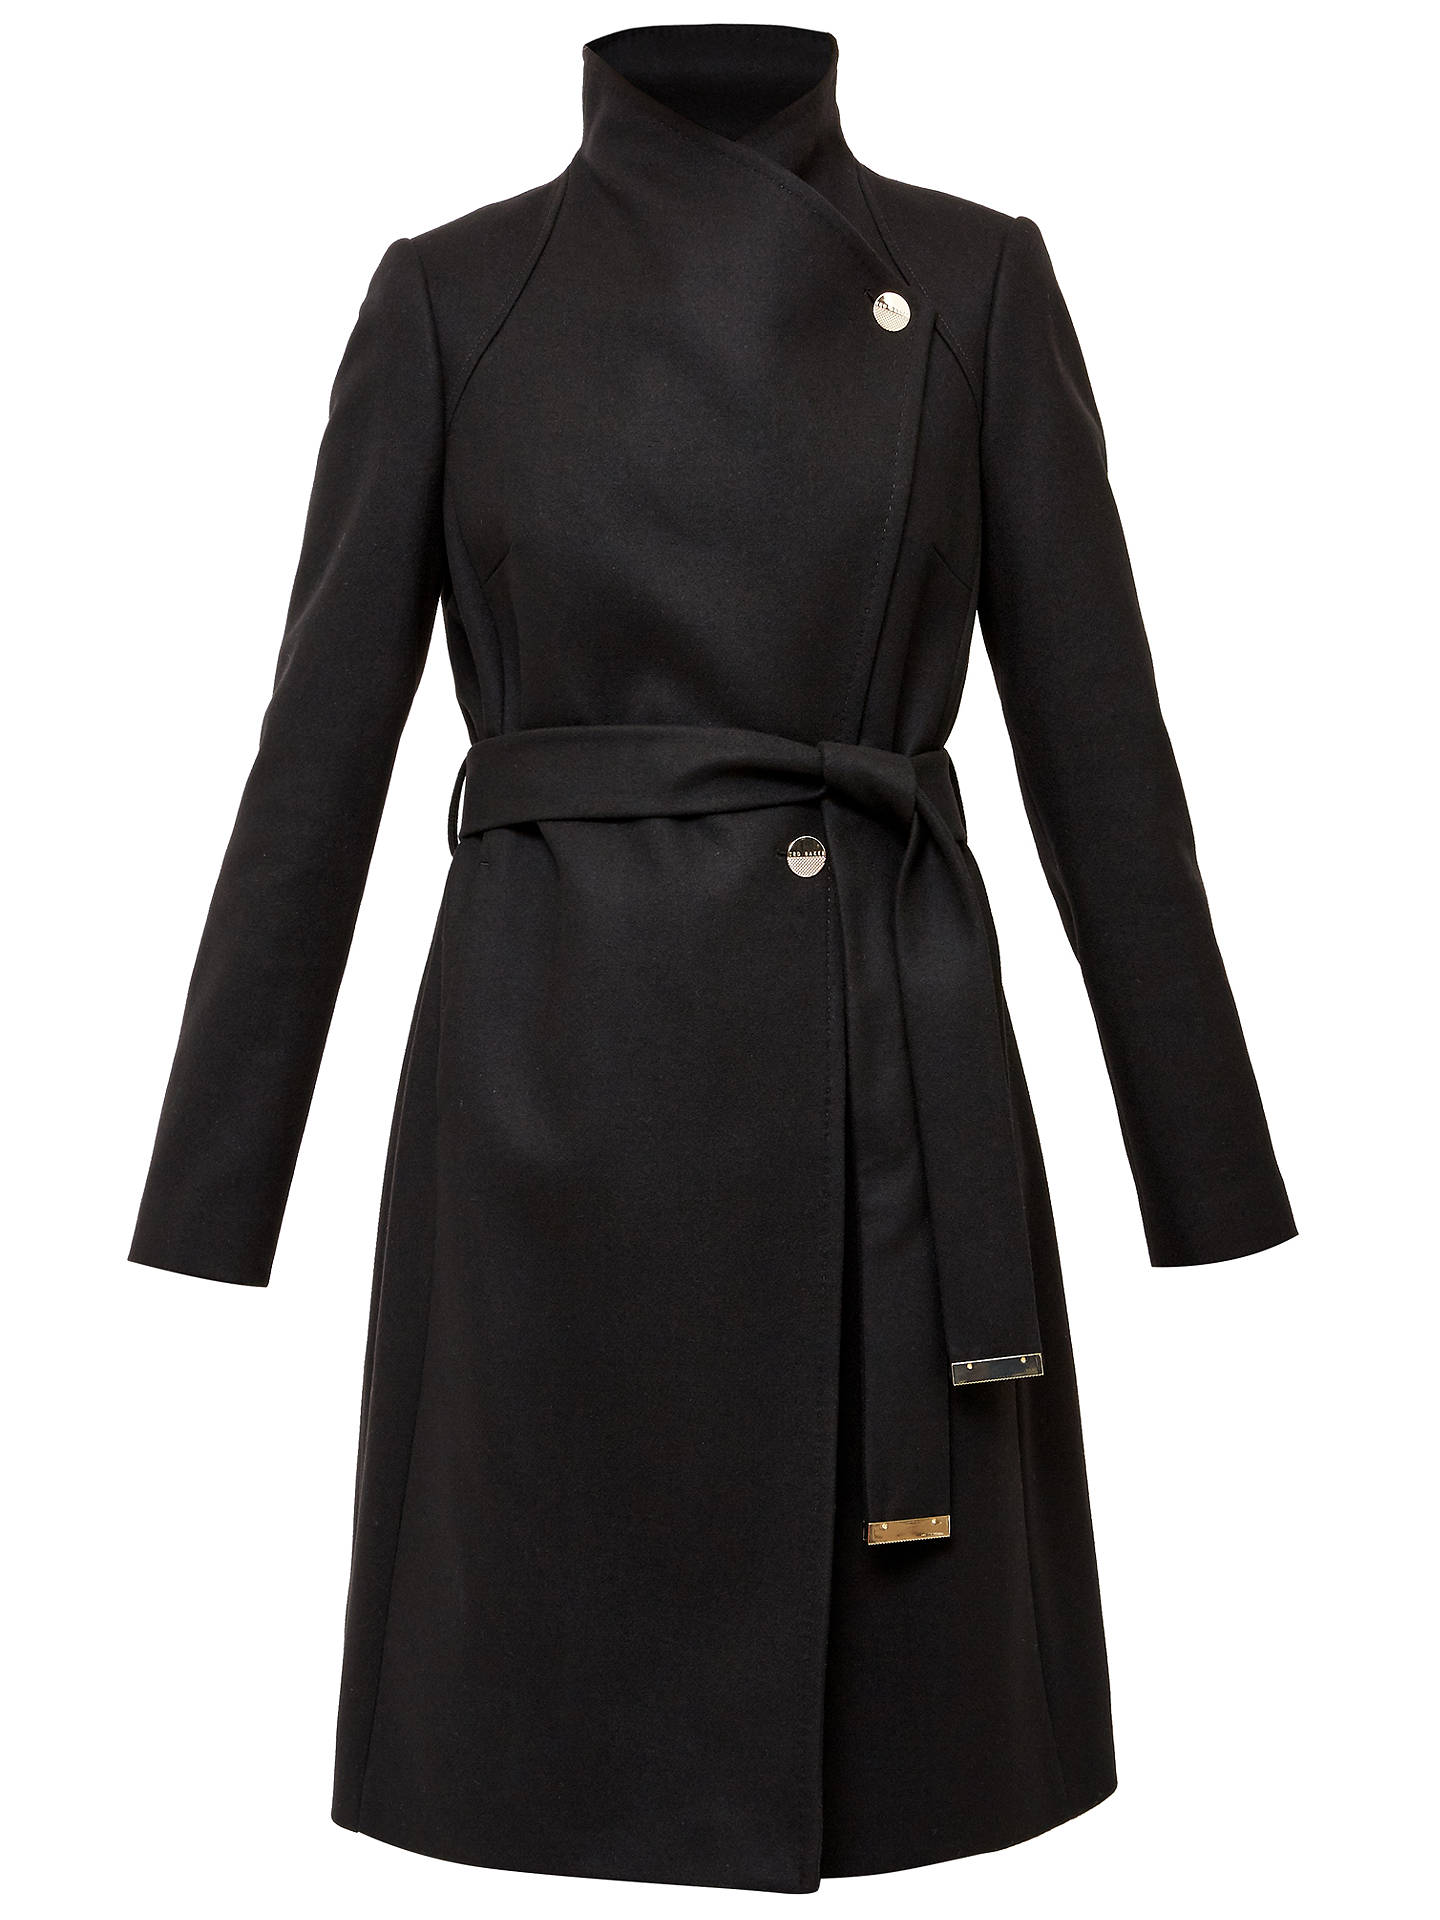 autumn shoes reasonably priced best quality Ted Baker Aurore Long Wrap Collar Coat, Black at John Lewis & Partners